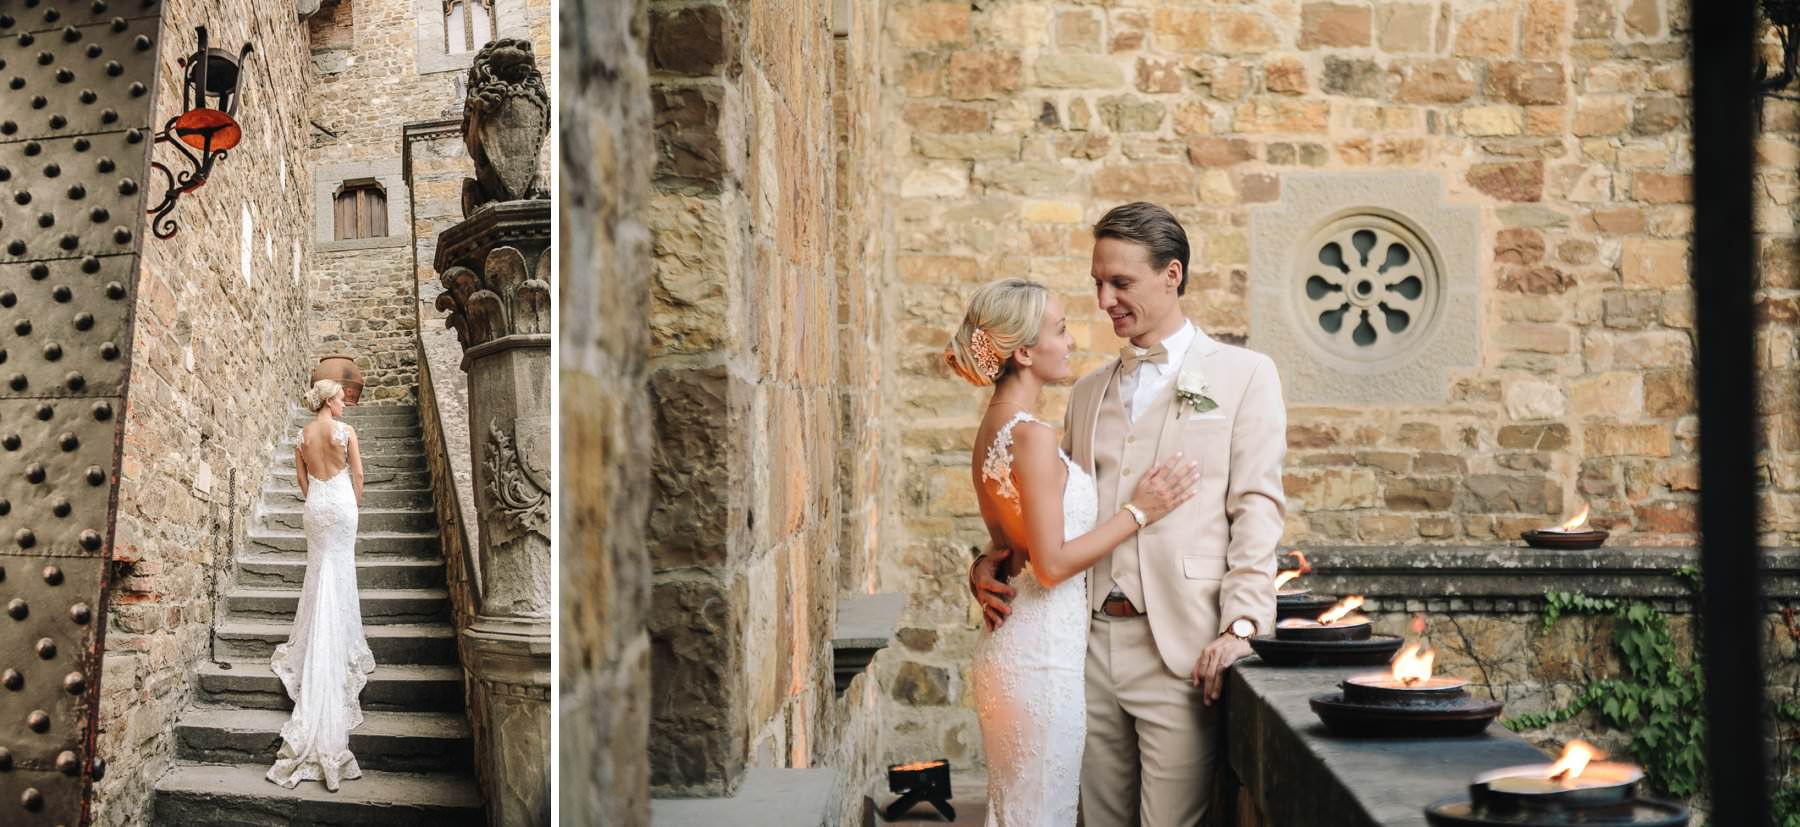 Beautiful bride in white wedding gown at Vincigliata Castle for elegant destination wedding in TUscany countryside